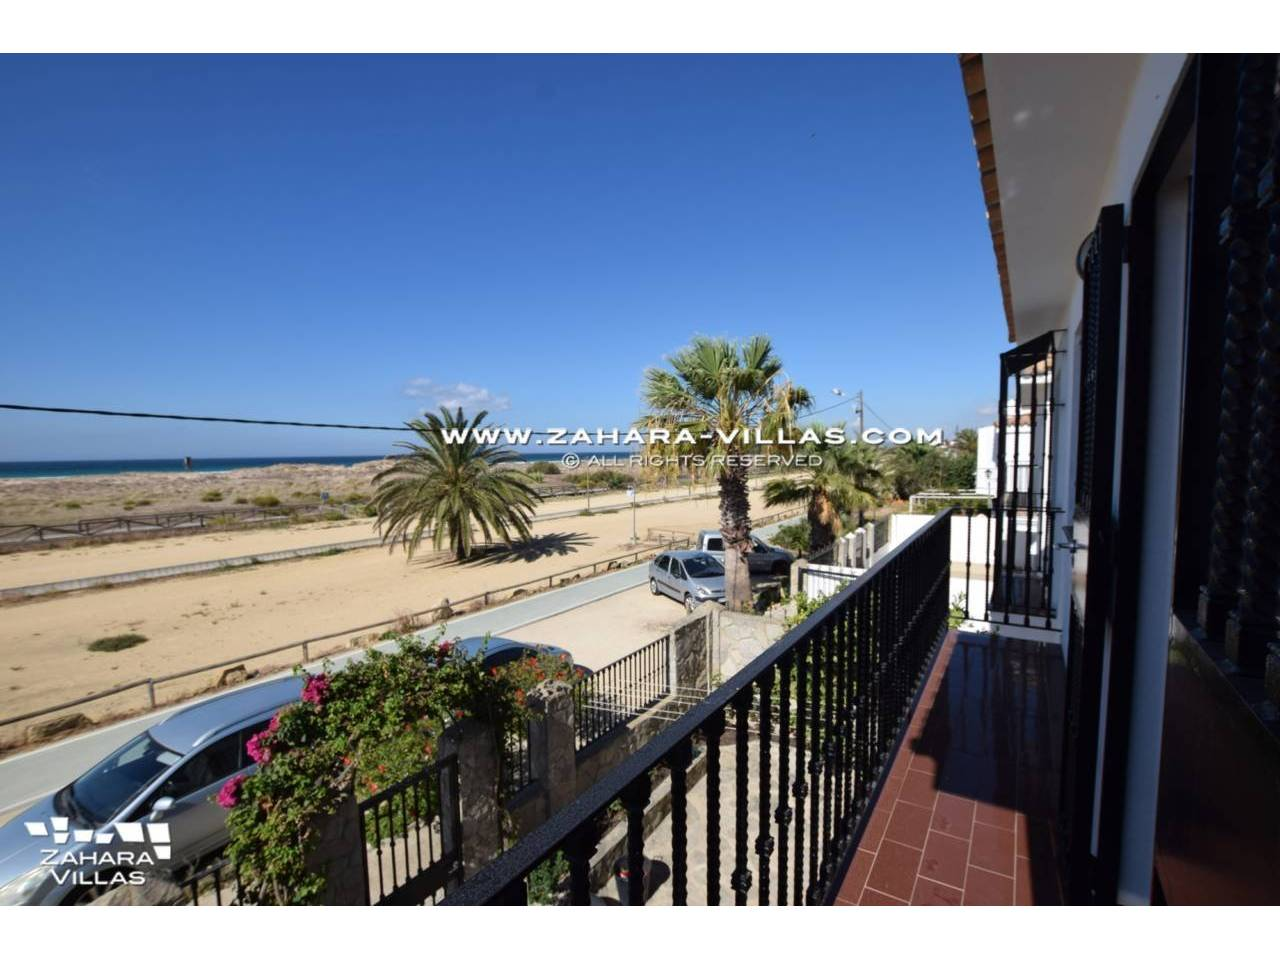 Imagen 20 de House for sale on the front beach, with sea views in Zahara de los Atunes